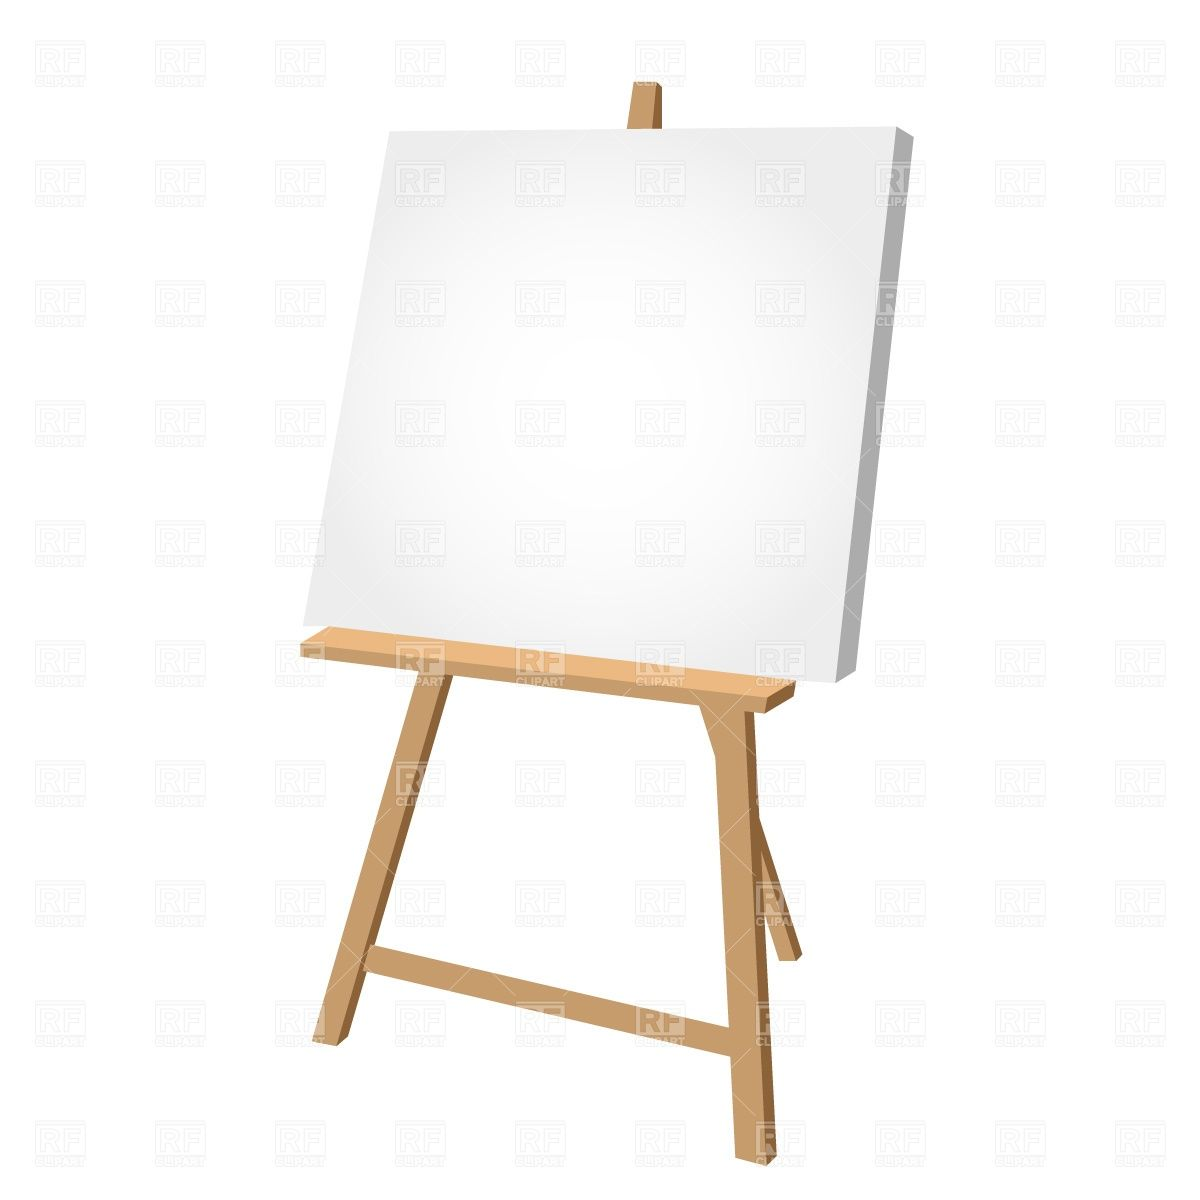 Easel clipart vector. Catalog objects blank download